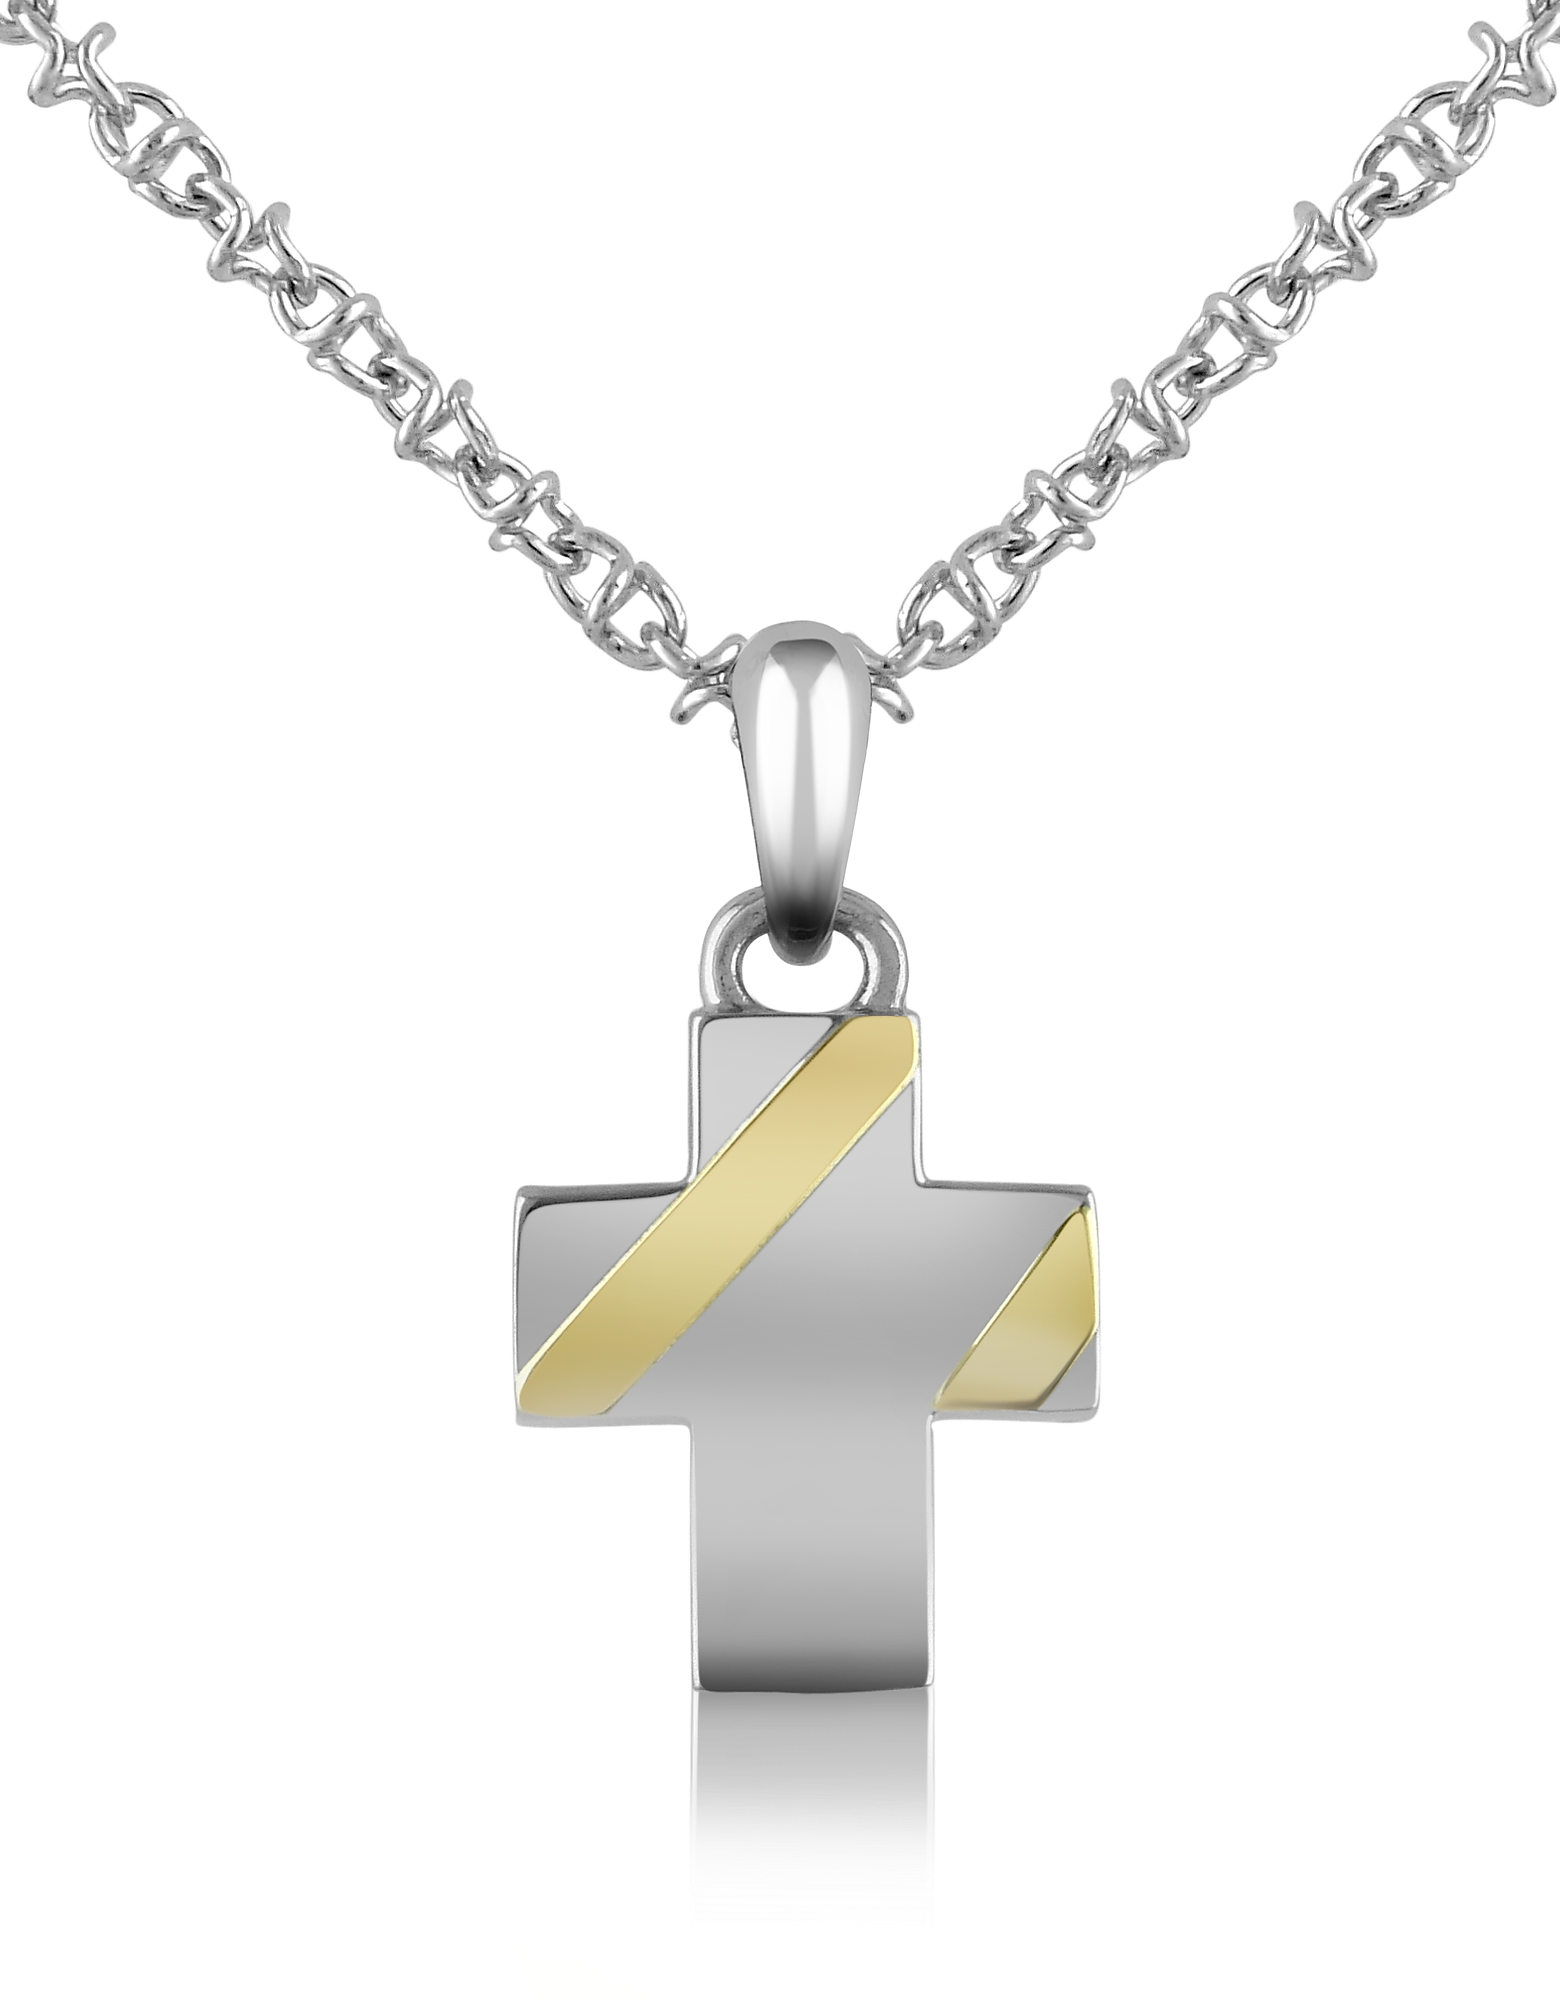 Forzieri Designer Biker Vibe, Stainless Steel Cross Pendant Necklace